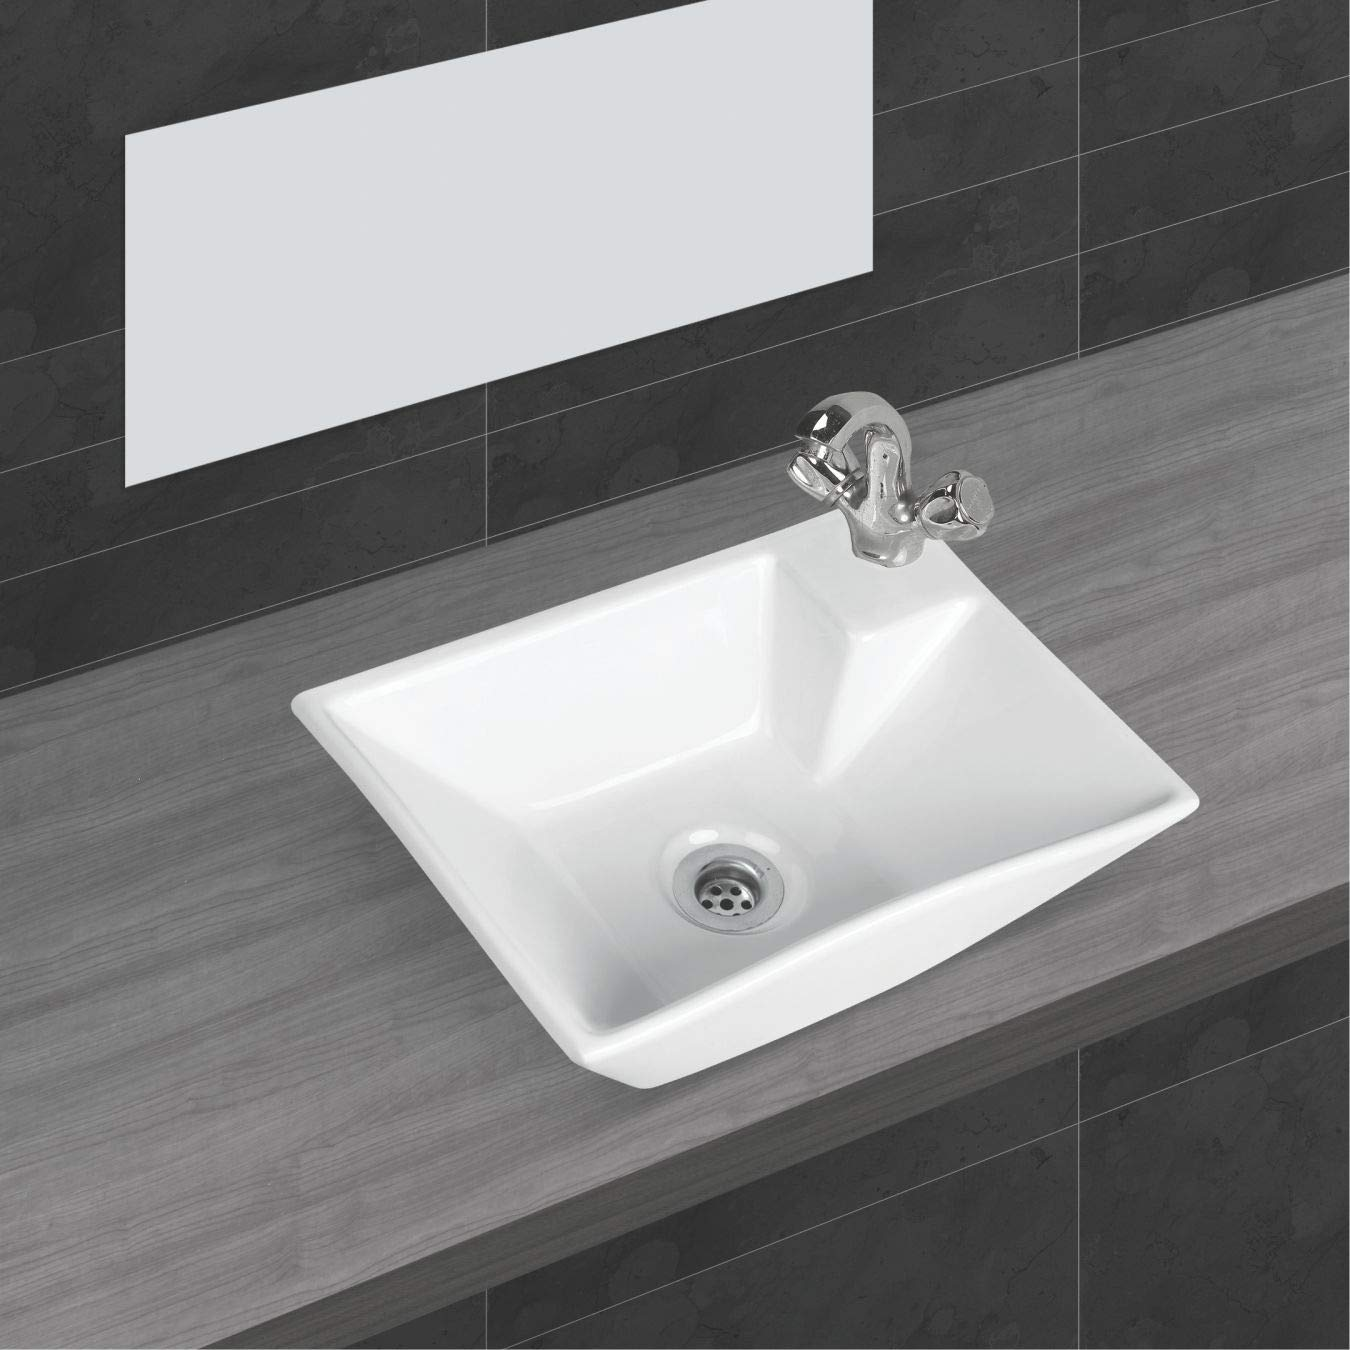 Table Top Basin Design Tescar Innovations2019 Org